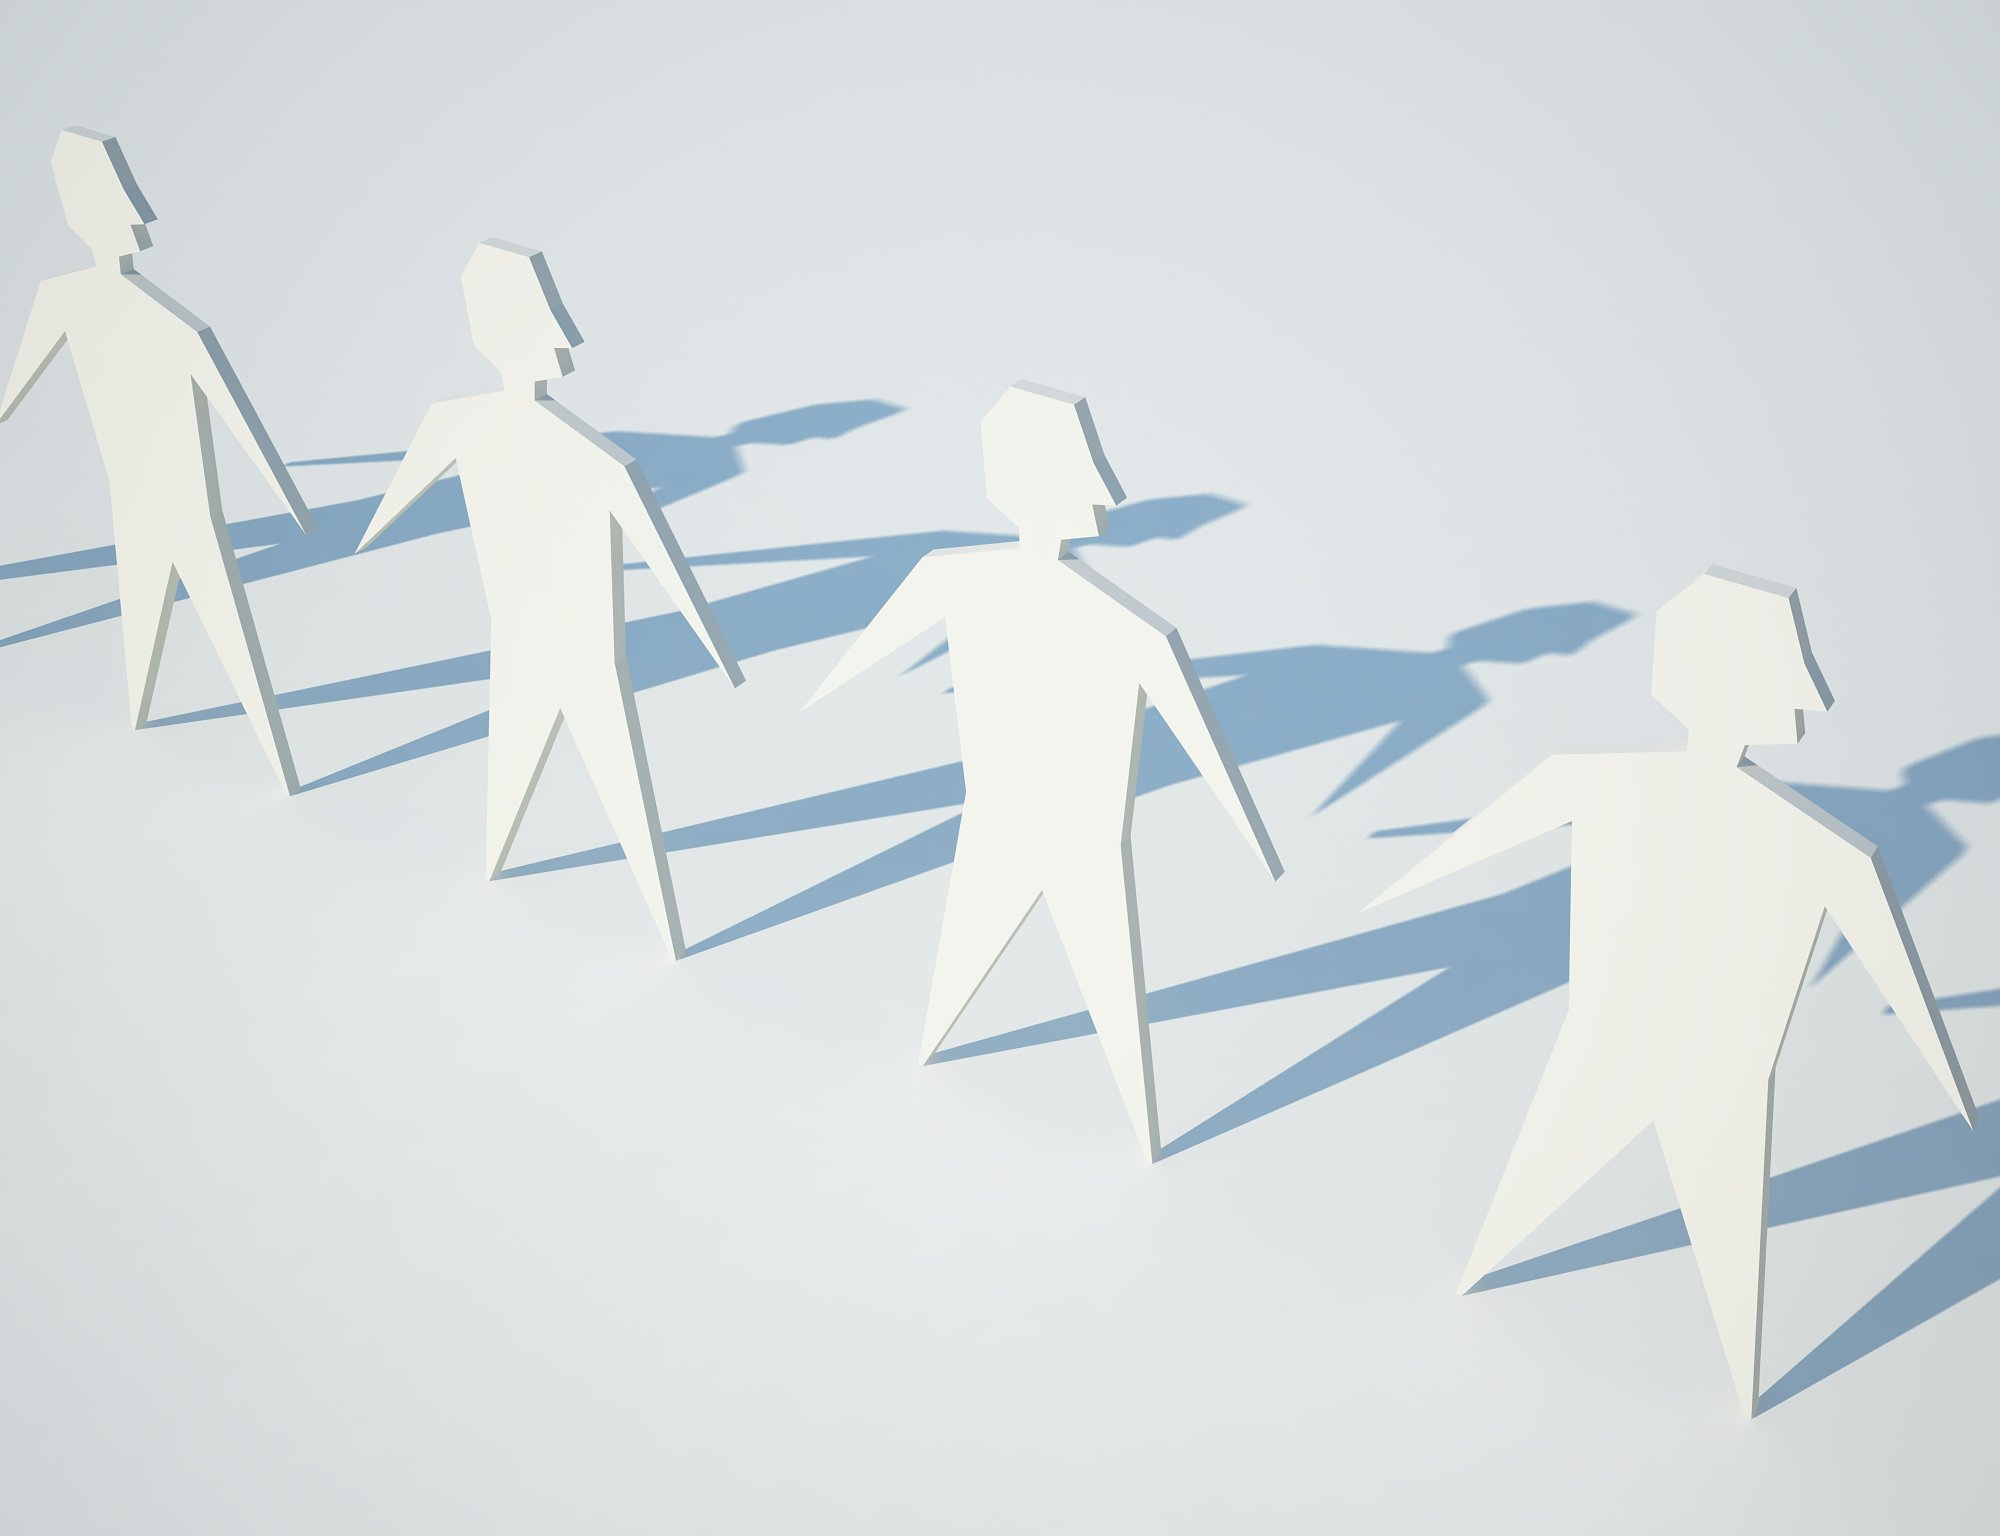 Ten tips on social networking policies